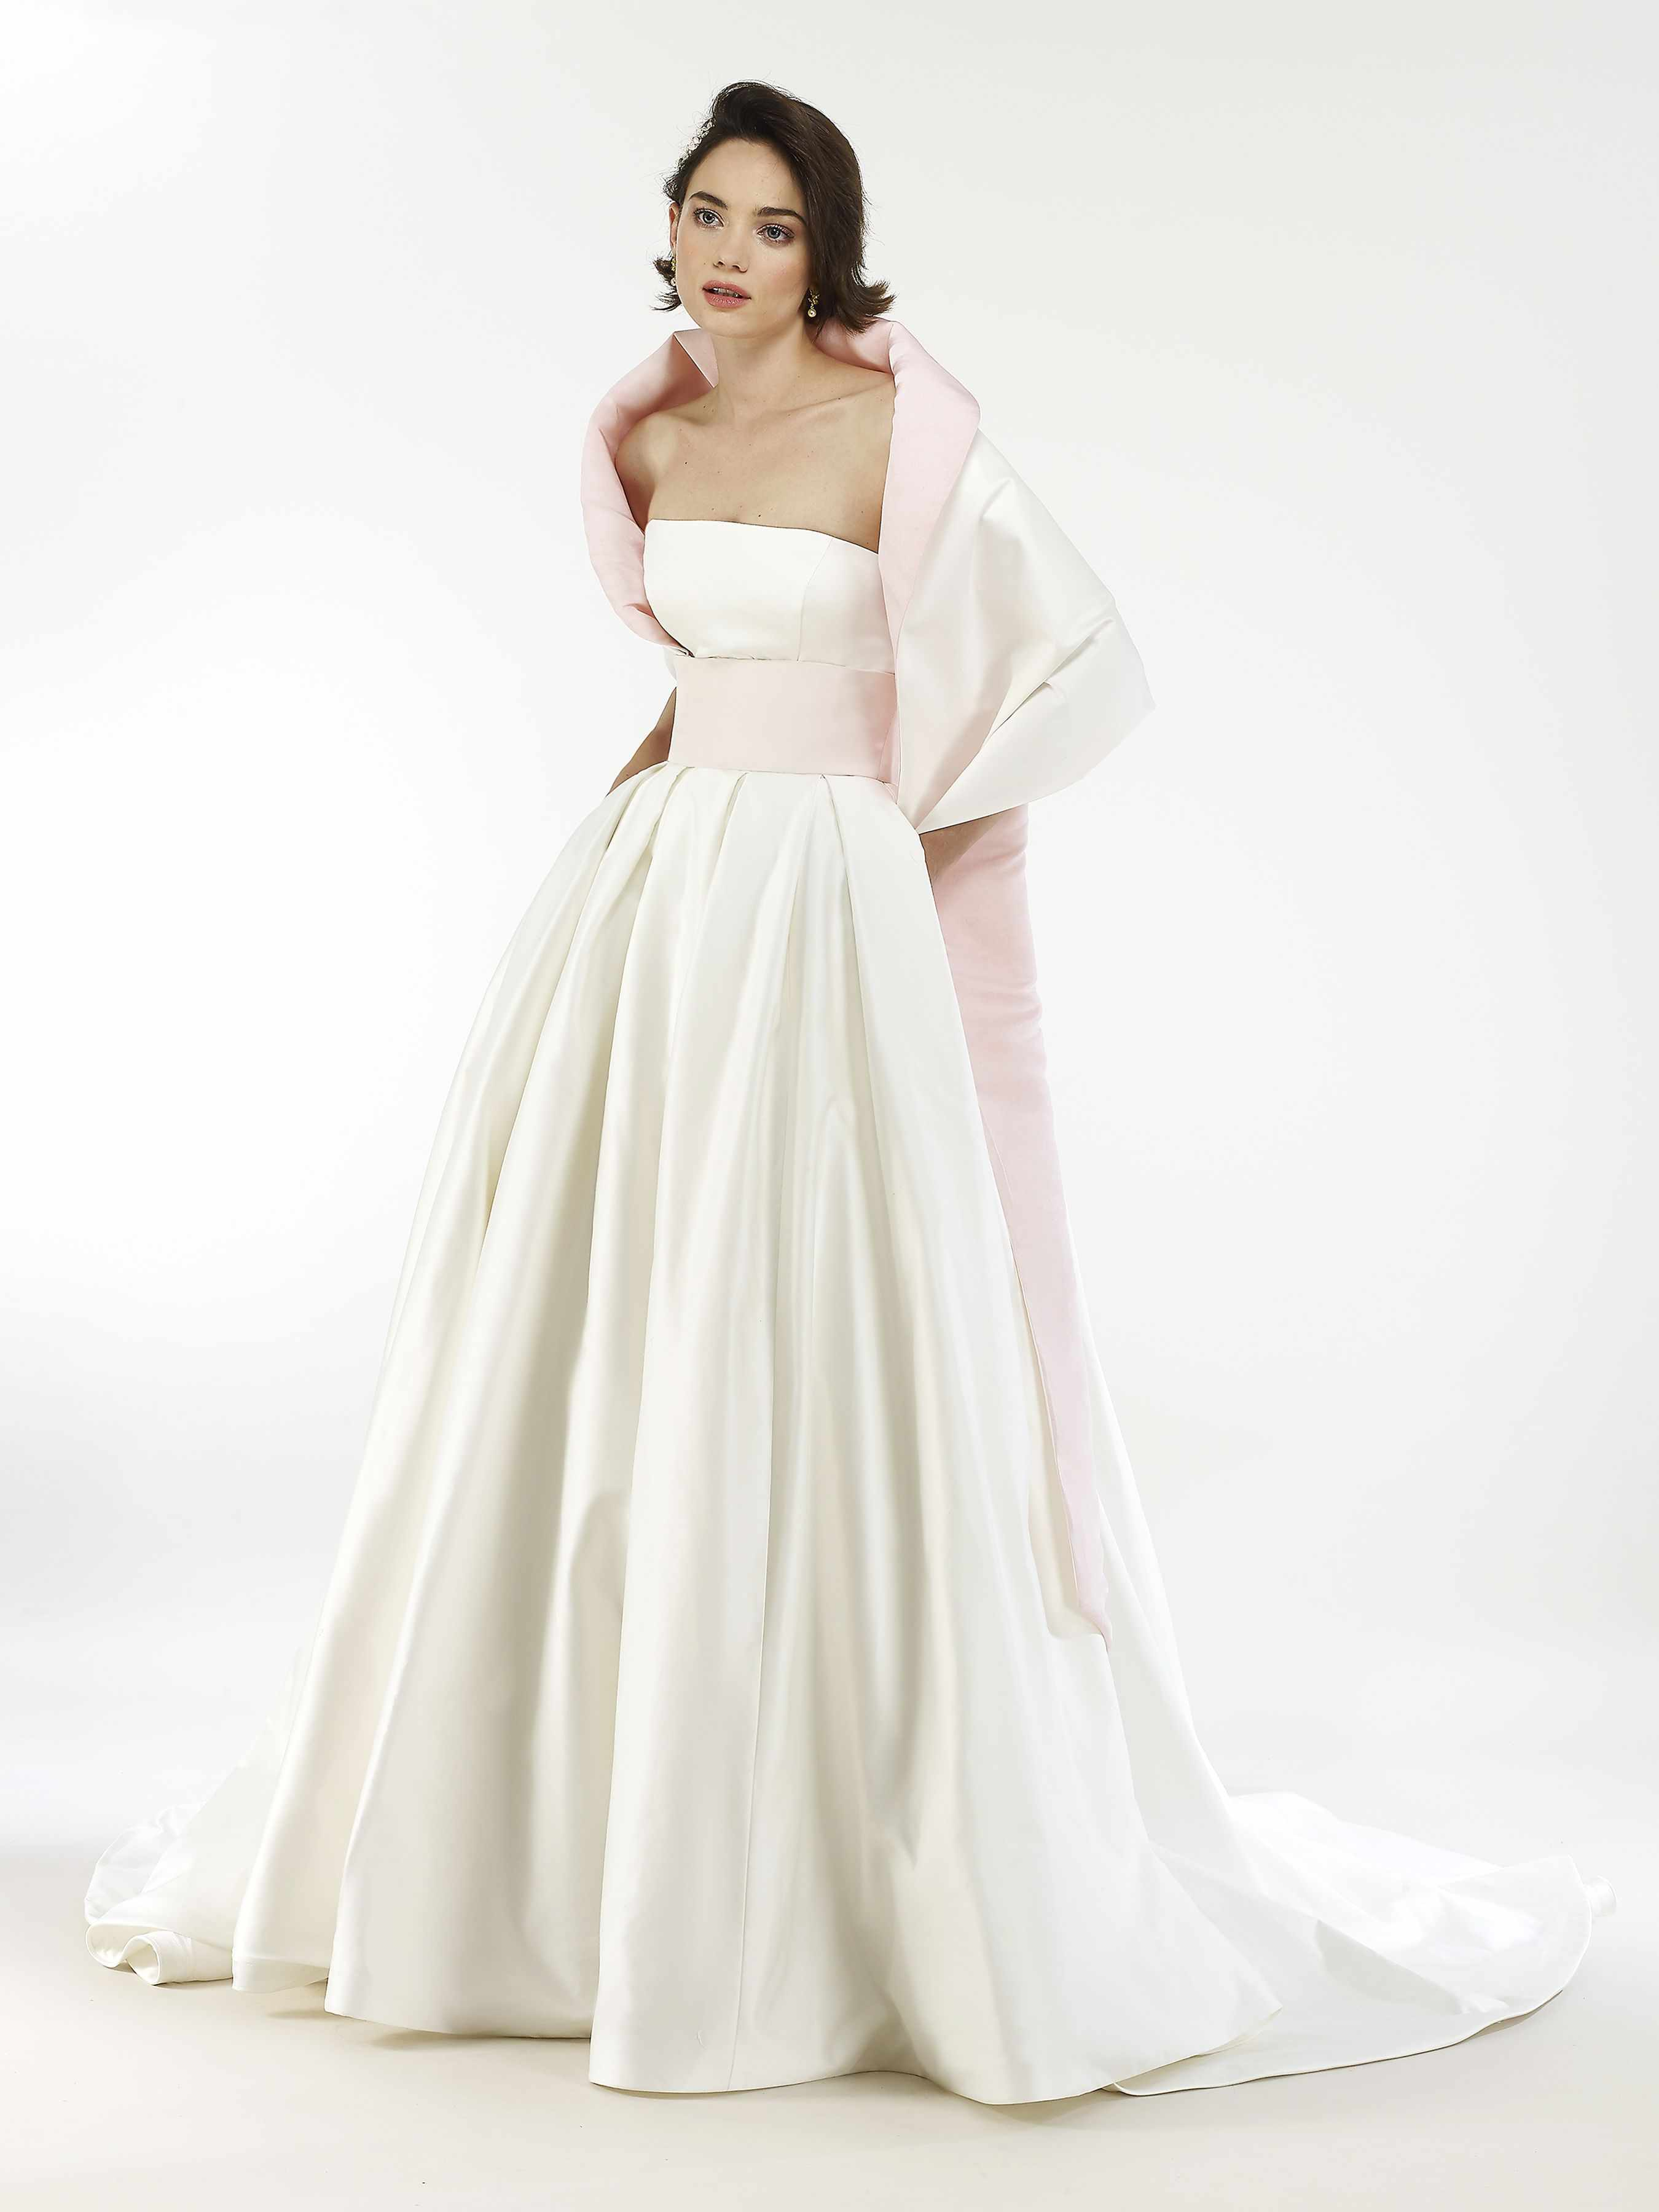 Model in strapless ballgown with pink waistband and shawl wrap